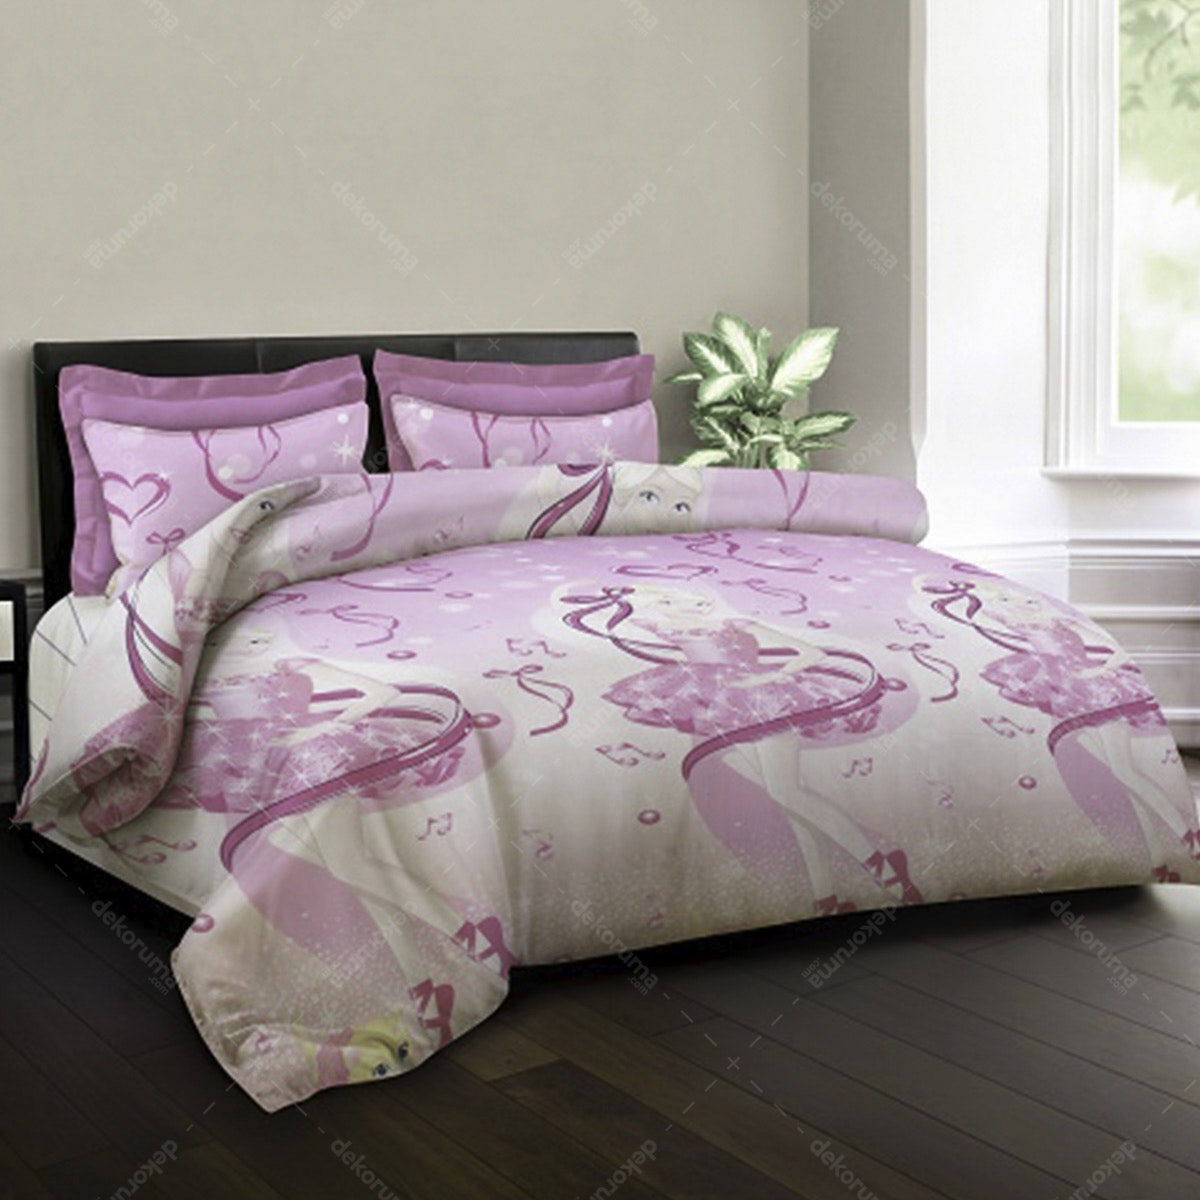 King Rabbit Set Sprei I Love Ballet Pink 160x200x40cm